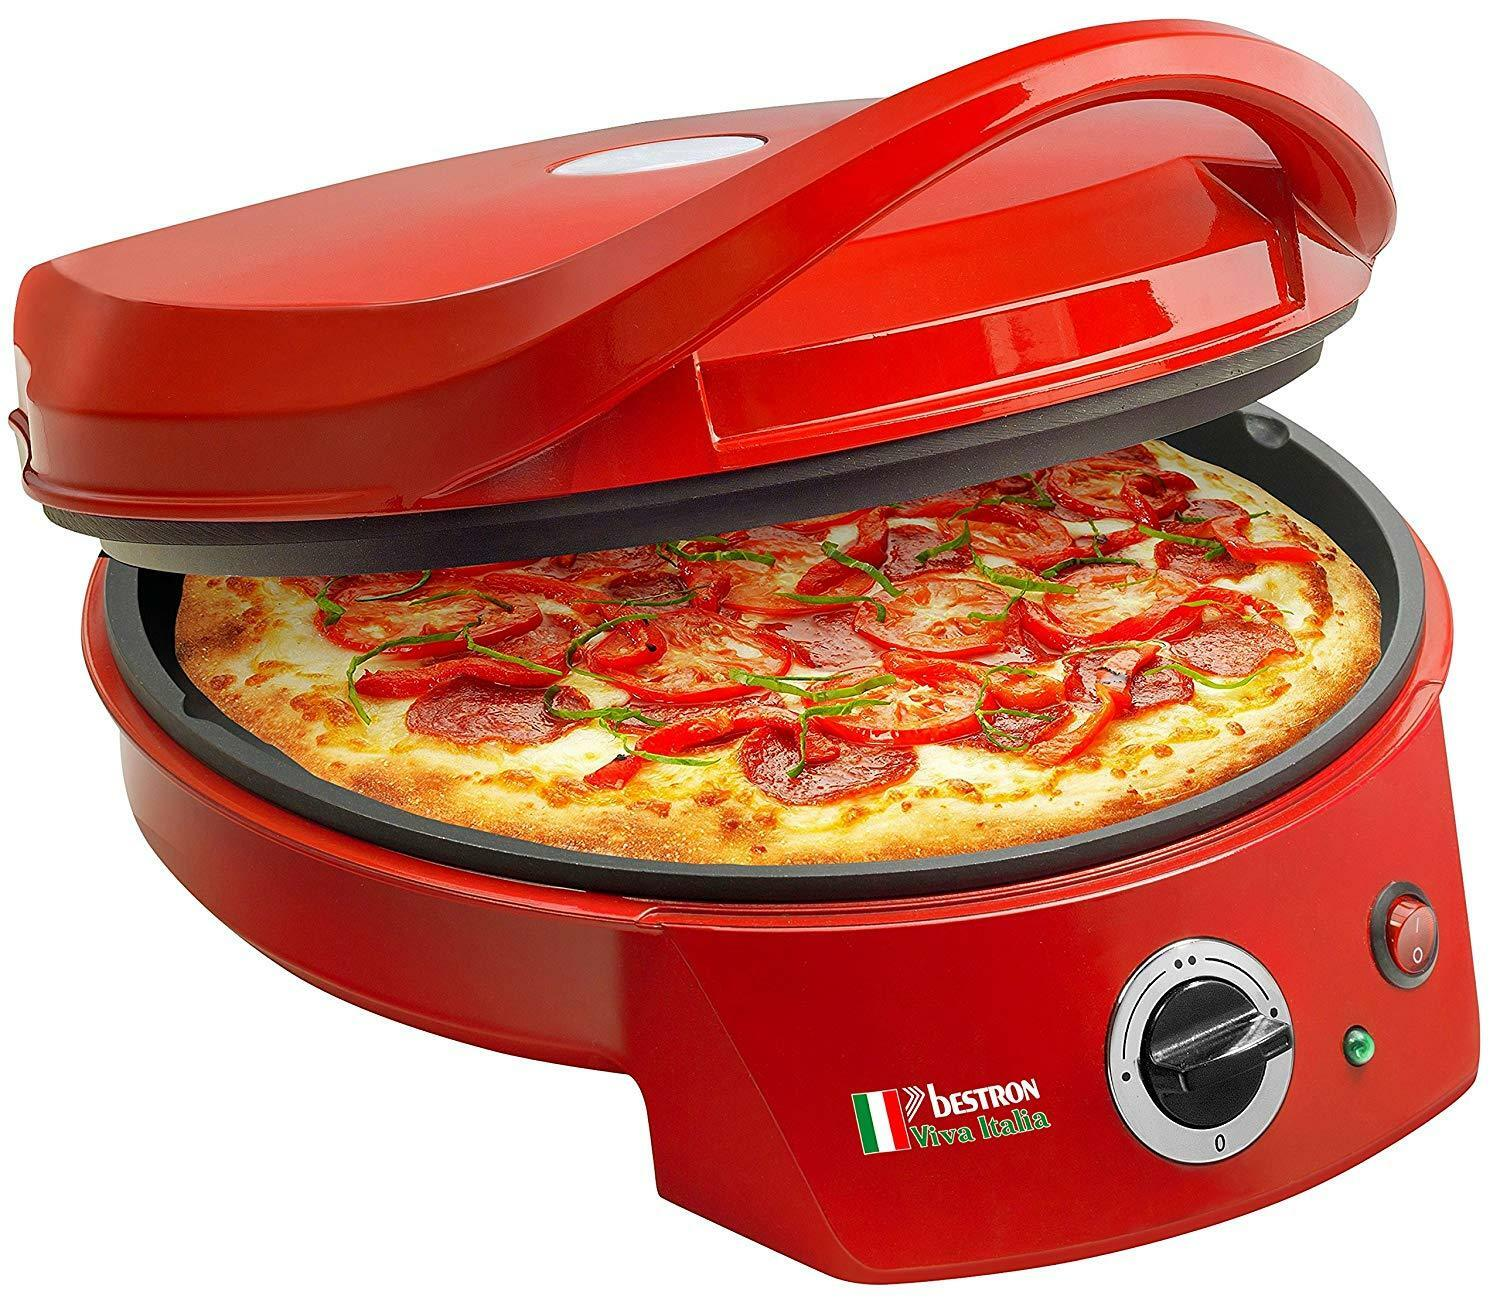 Bestron Apz400 Ovens Toaster pizza Red 1800W - ø 10 5 8in con Thermostat